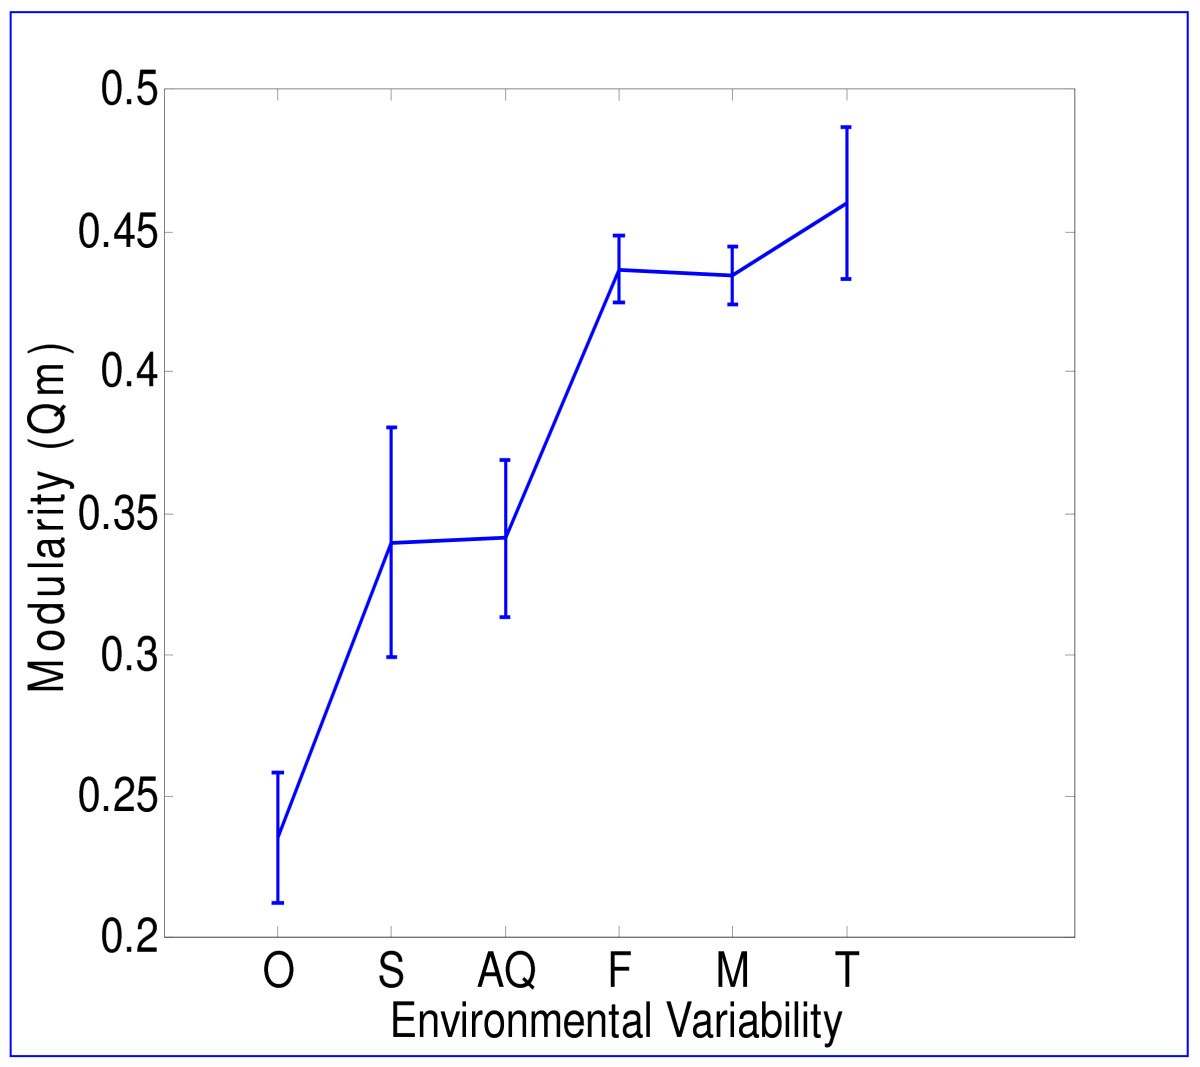 Modularity Of Metabolic Networks Correlates With Variability In The Environment